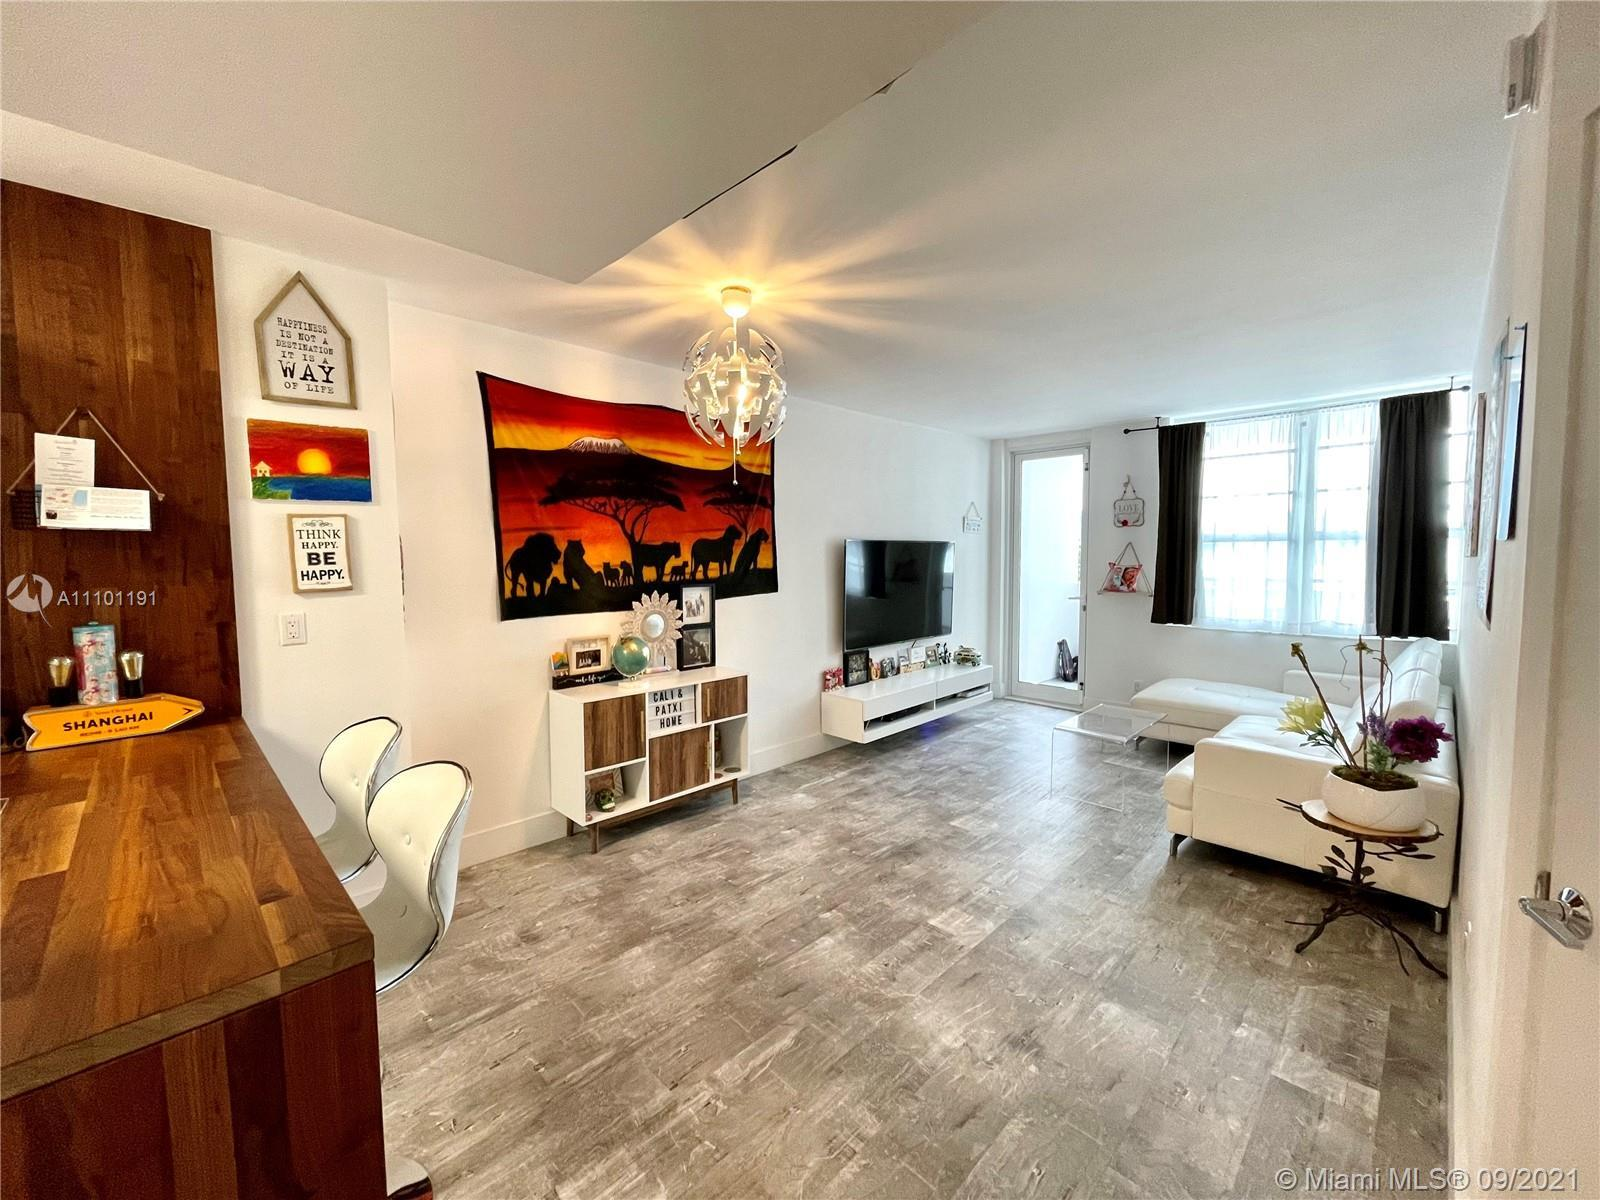 updated unit in the heart of South beach, stainless steel appliances, laminated floor and balcony. B